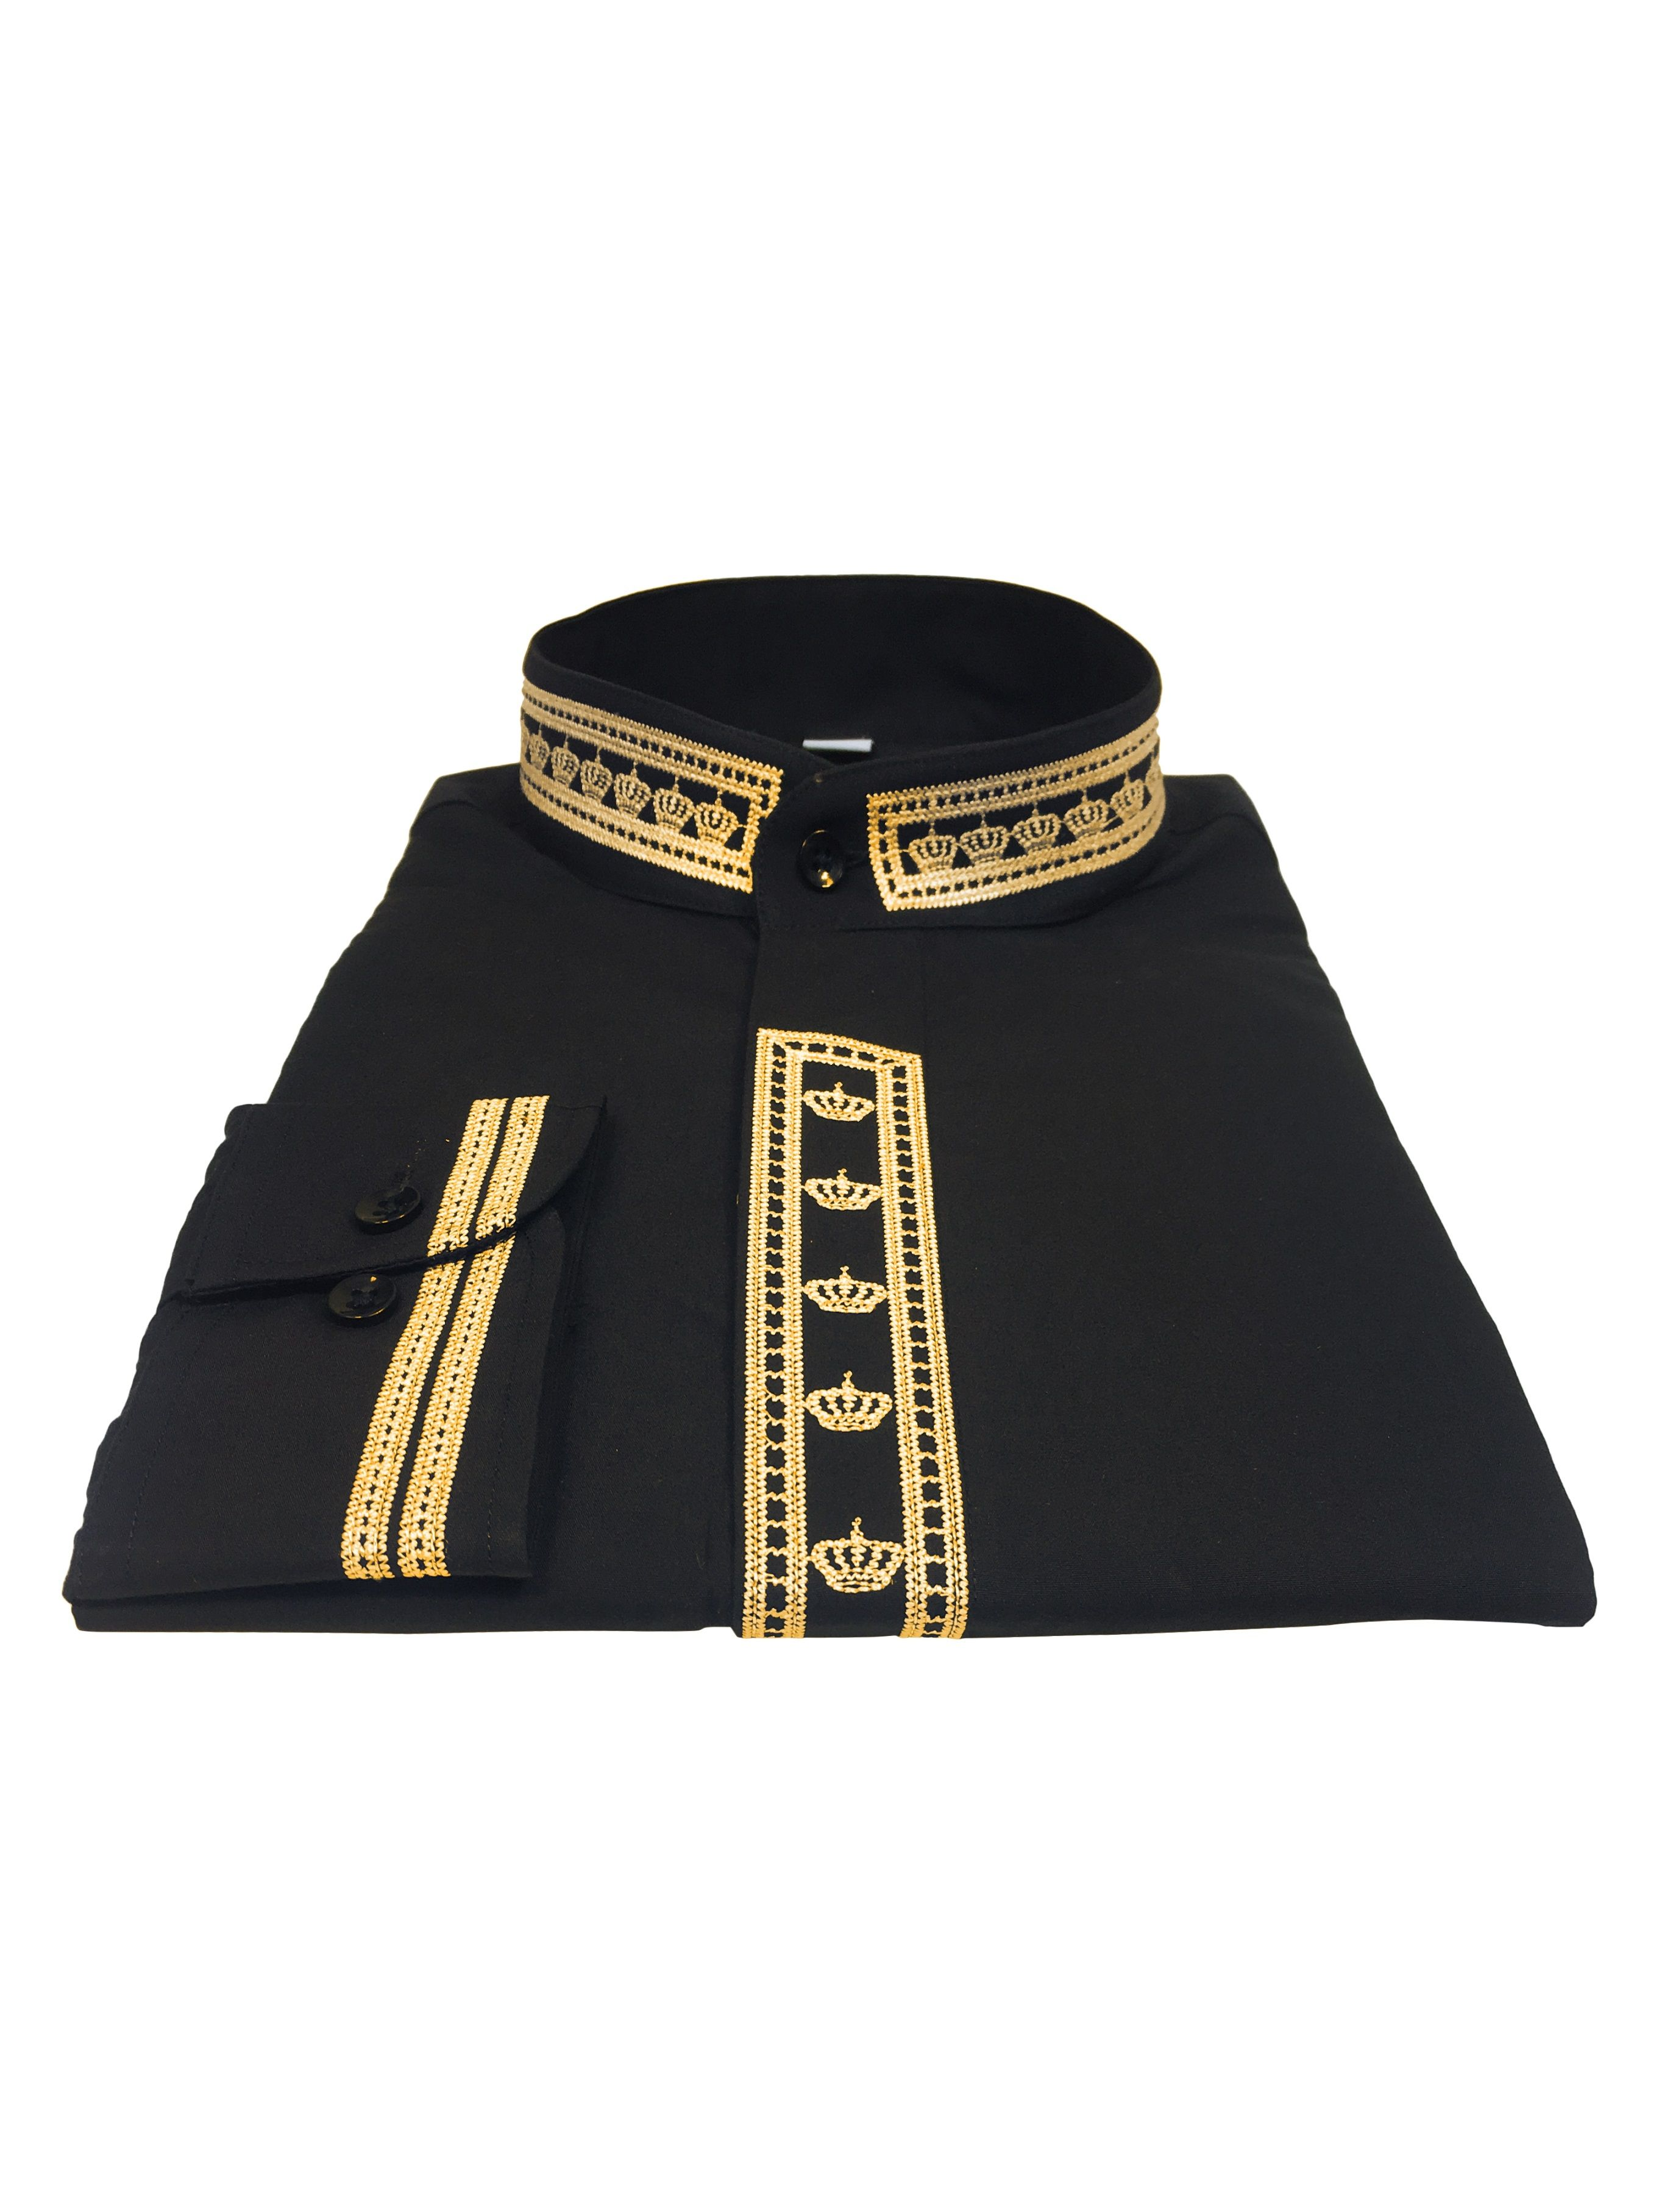 342. Men's Clergy Shirt With Rejoice Crown Fine Embroidery Long Sleeves- Black/Gold